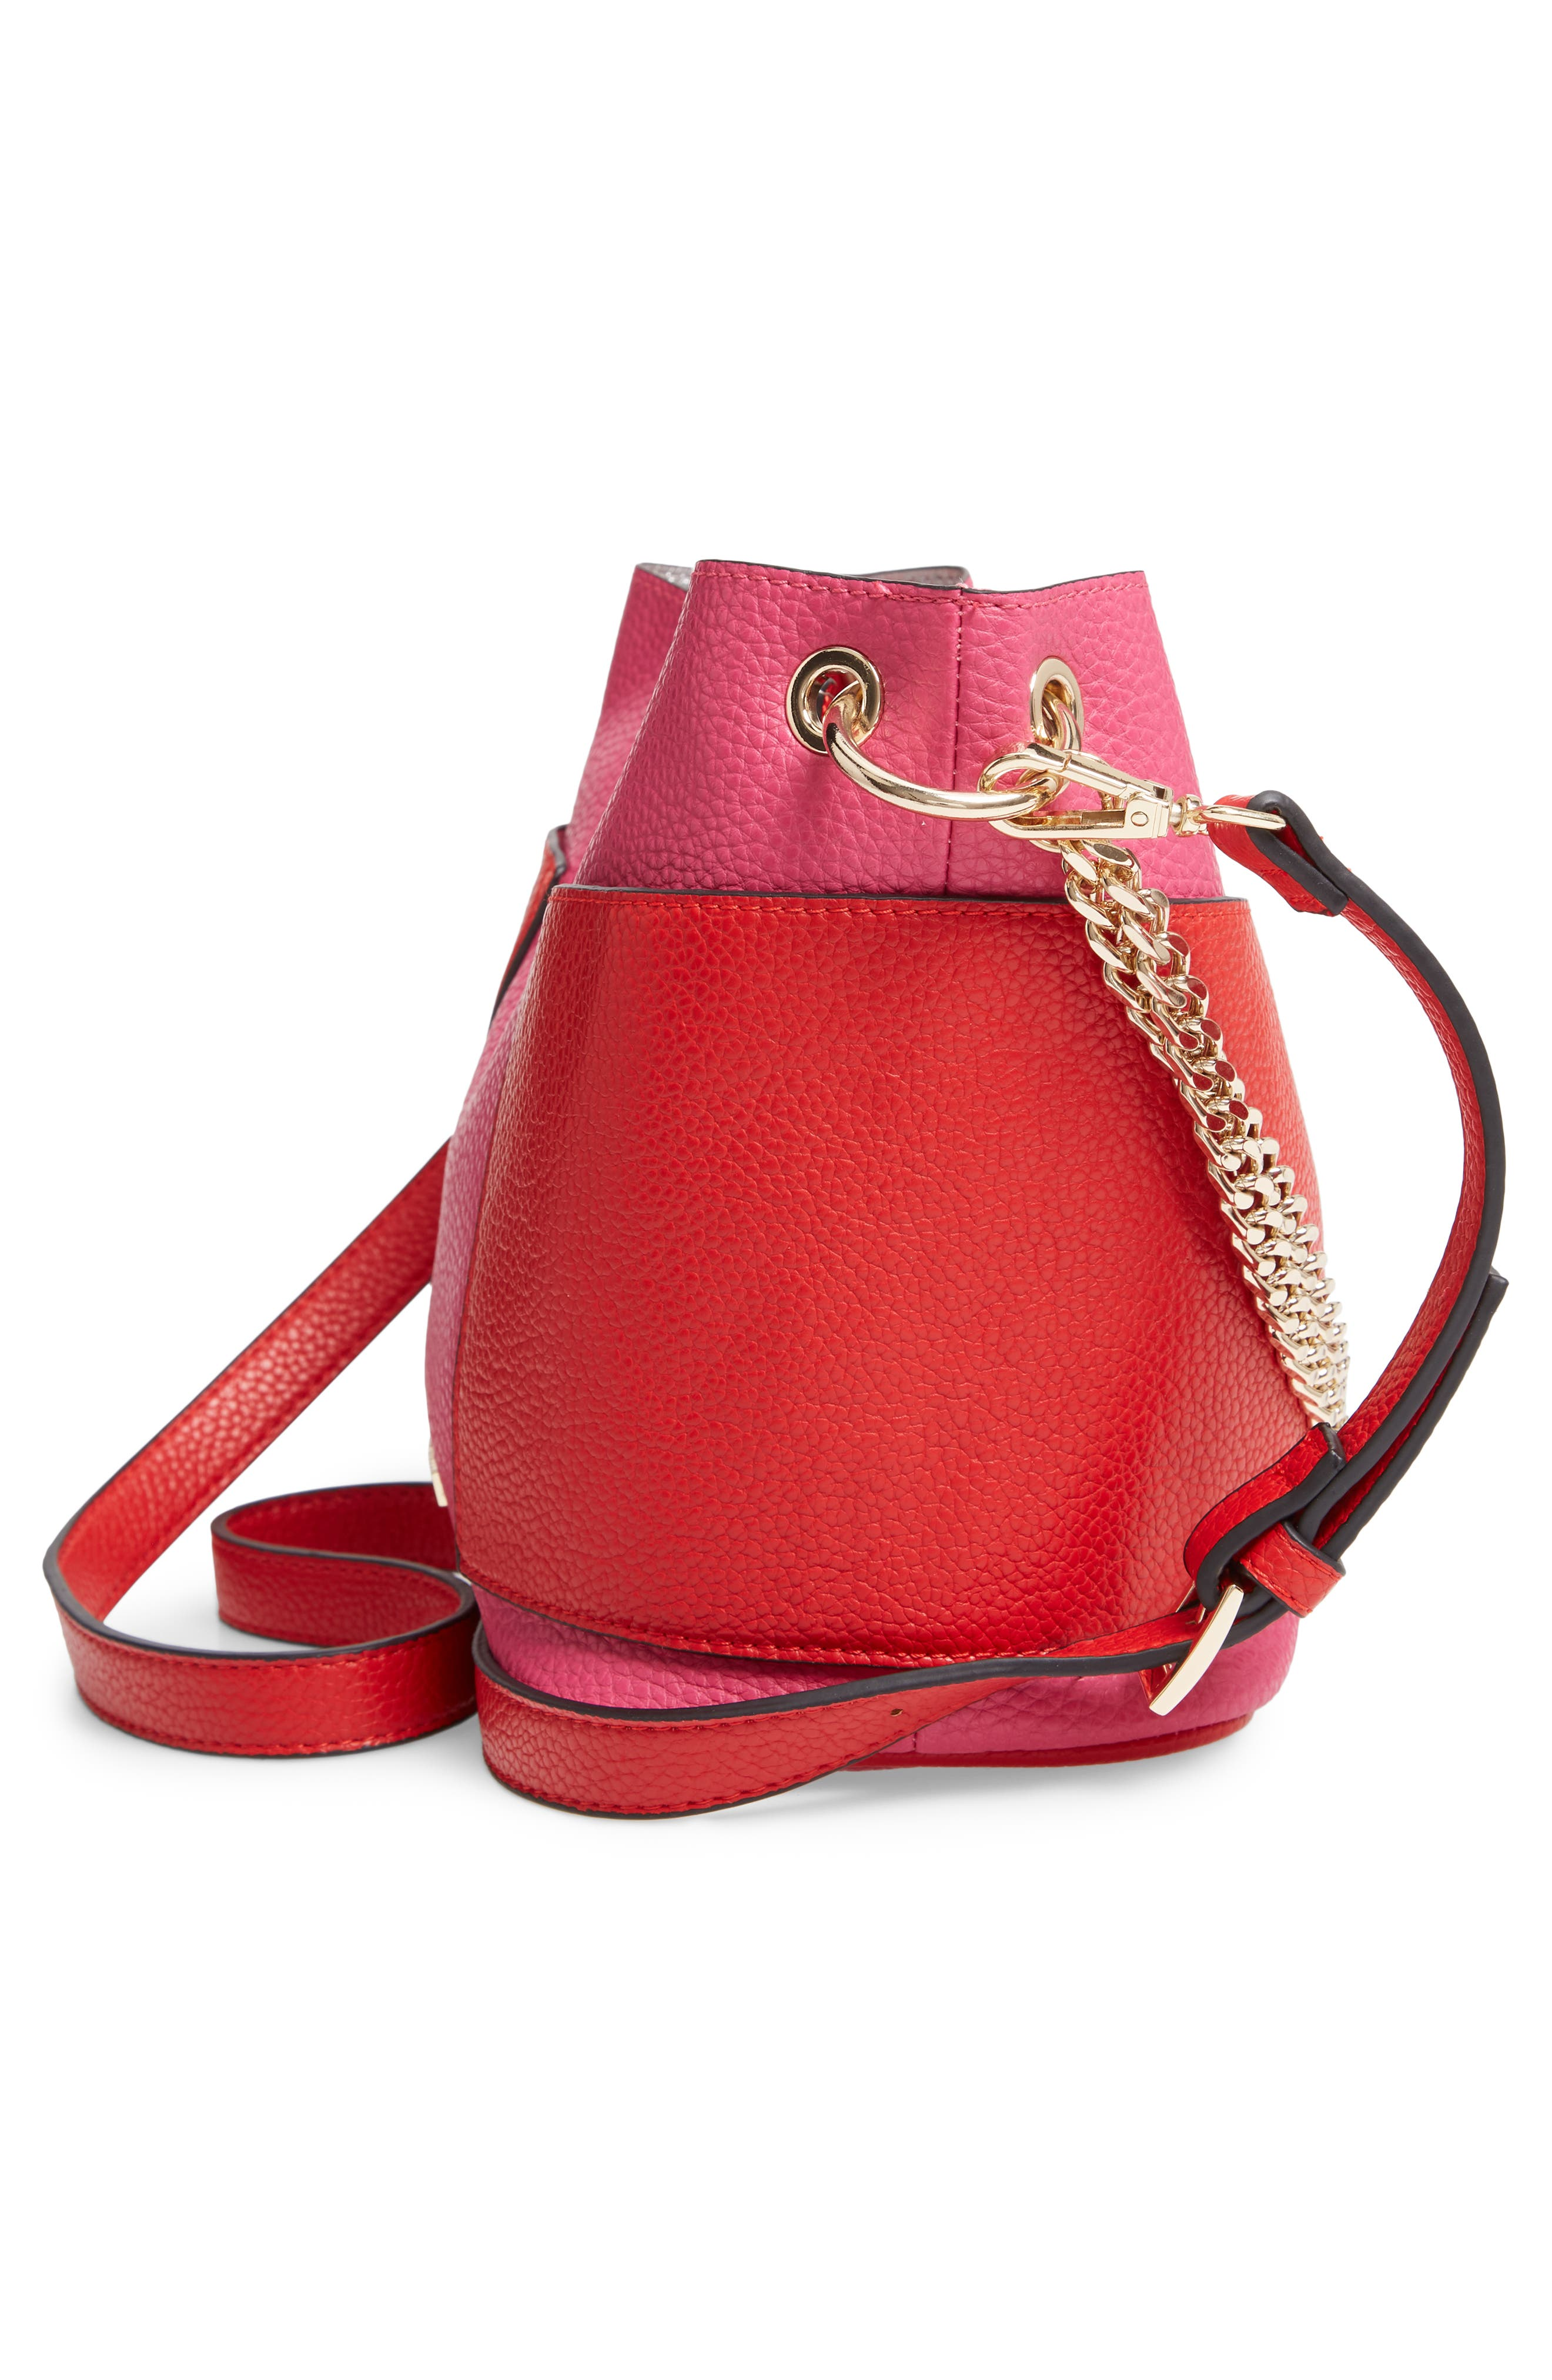 Bettie Faux Leather Bucket Bag,                             Alternate thumbnail 5, color,                             PINK/ MULTI